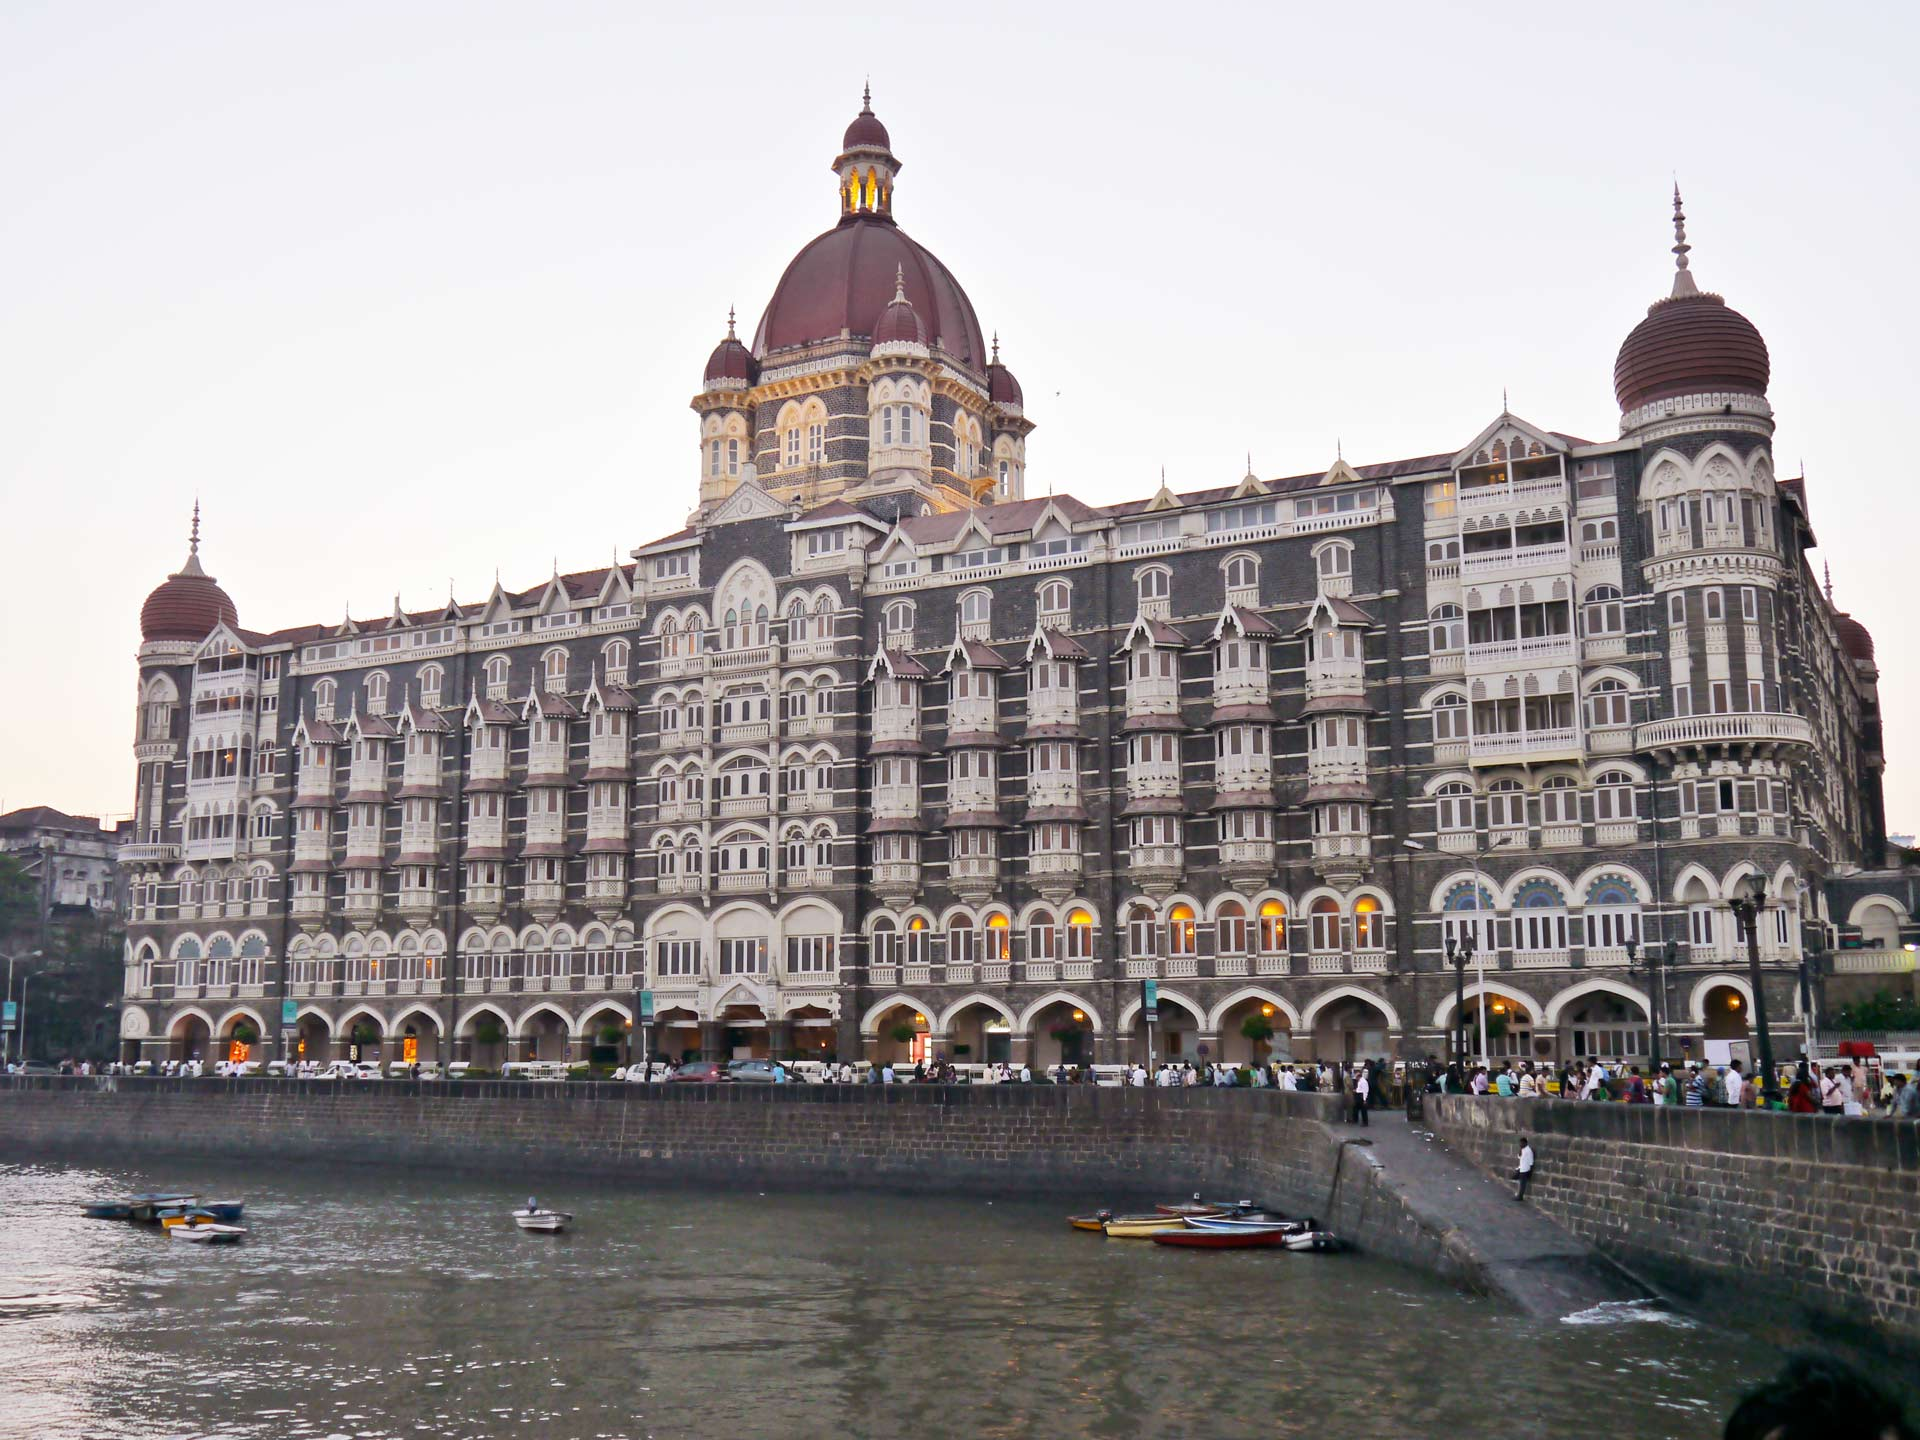 Taj Mahal hotel famous building of touristic part in Mumbai, India